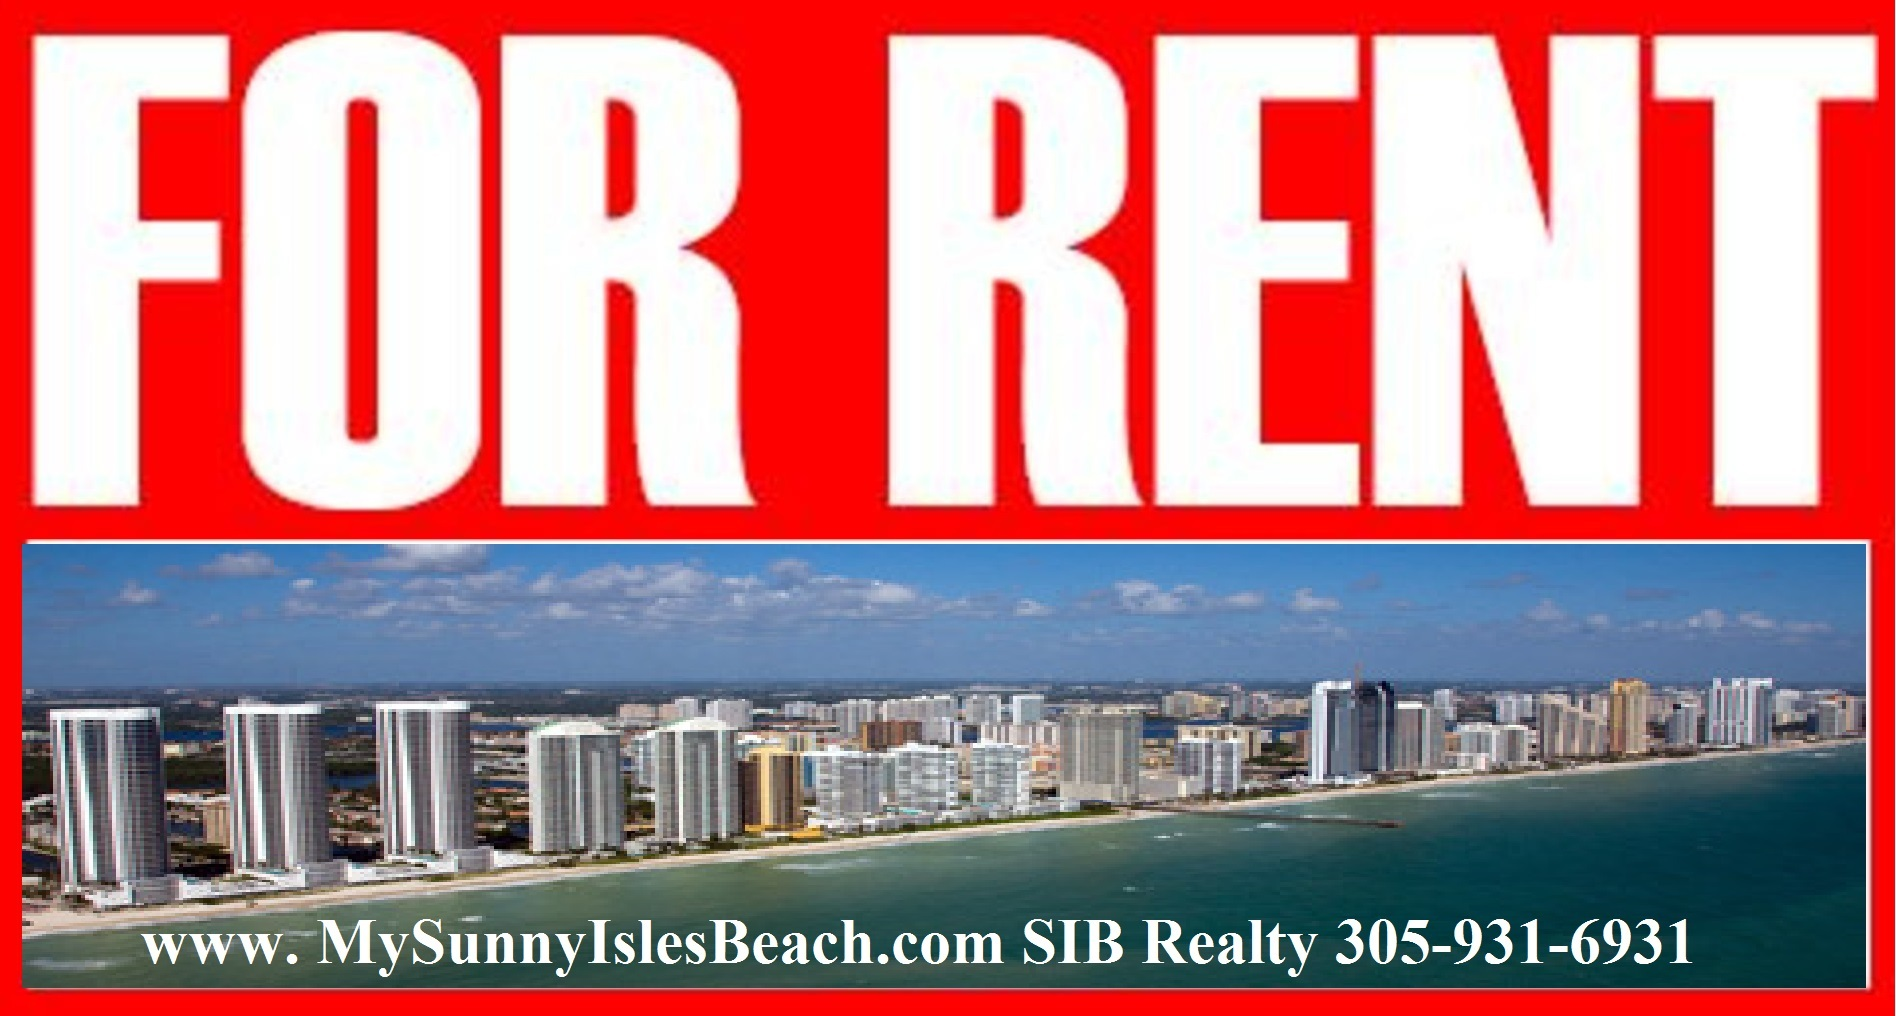 Condos For Rent Winston Towers Sunny Isles Beach